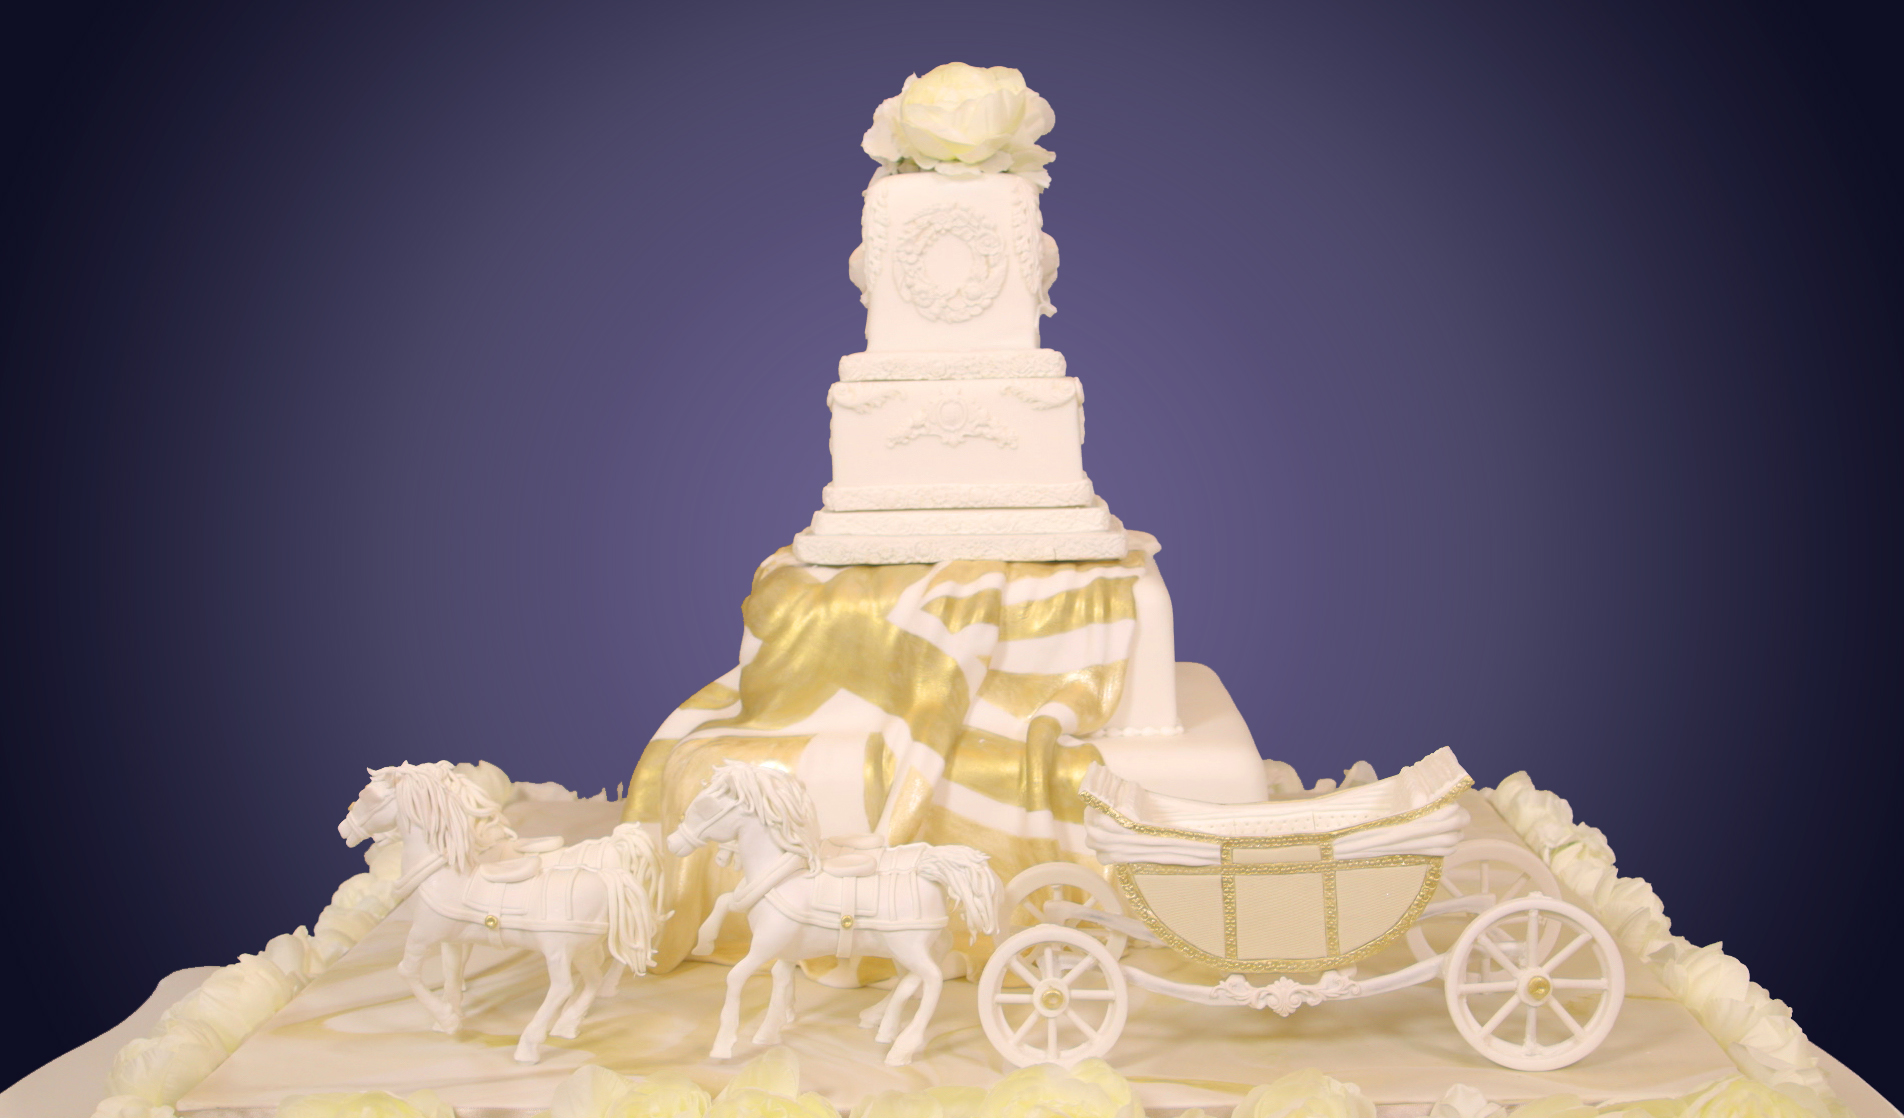 royal wedding cake special a carriage for harry and meghan rosie cake diva royal wedding cake special a carriage